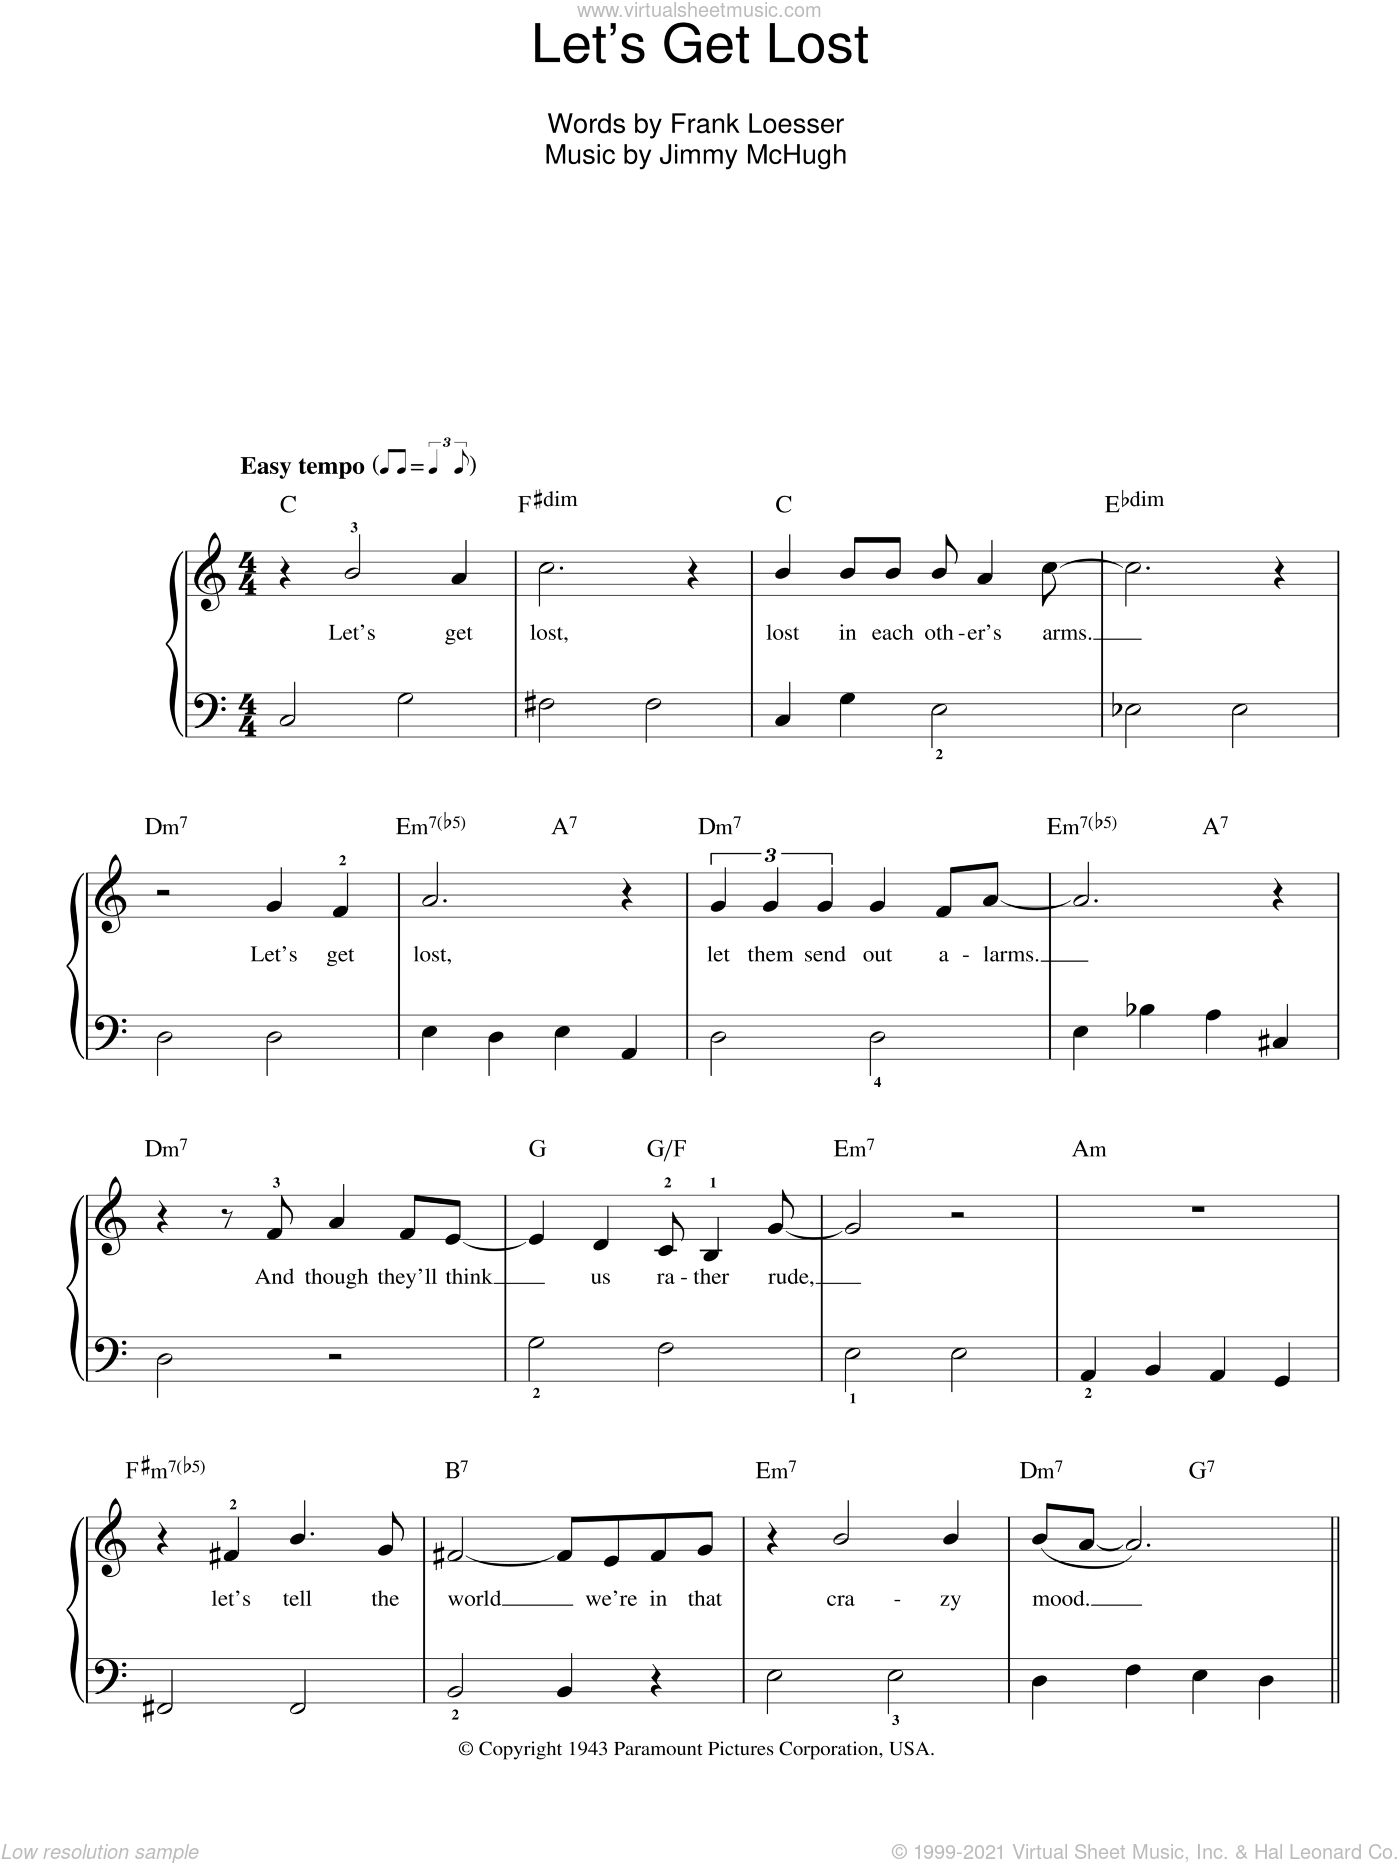 Let's Get Lost sheet music for piano solo by Chet Baker, Frank Loesser and Jimmy McHugh, easy skill level